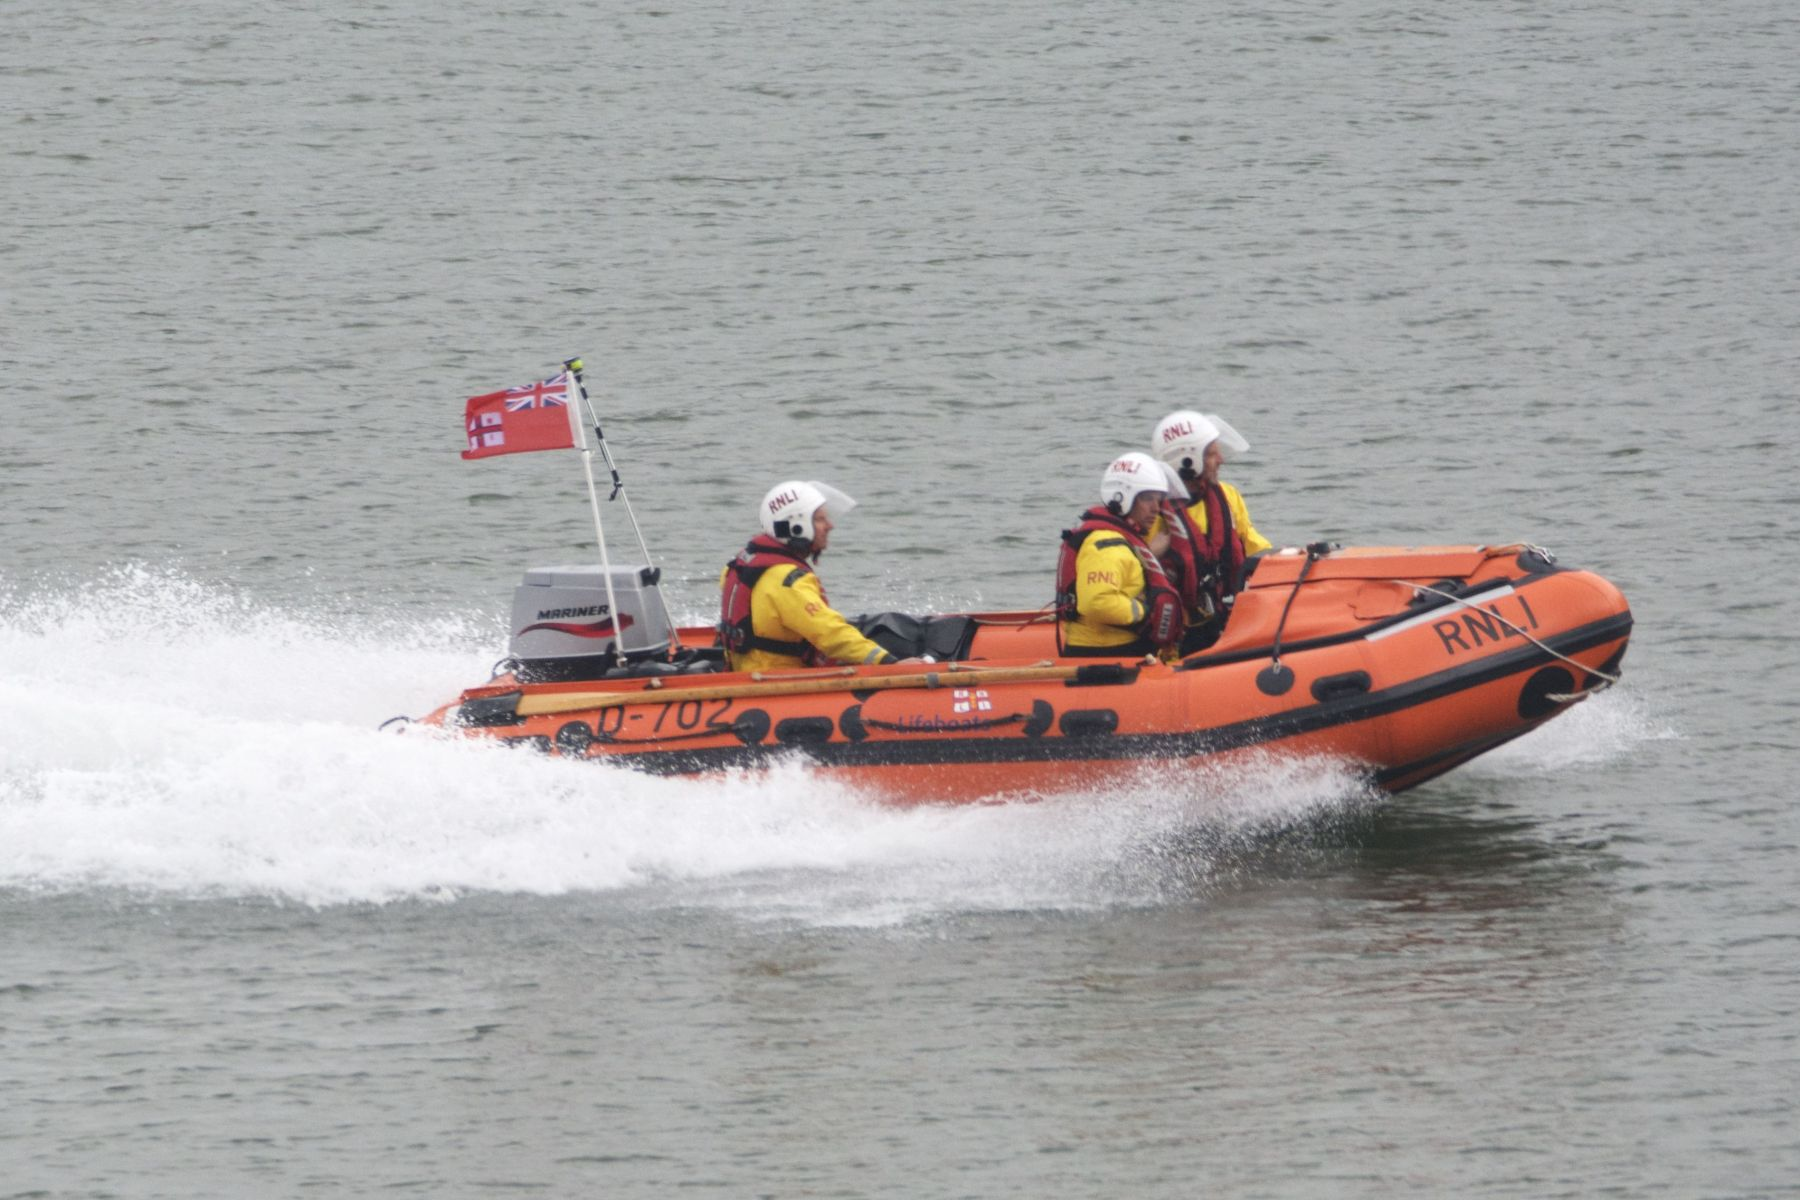 Dart RNLI D class lifeboat responding to report of a family trapped near Blackpool Sands